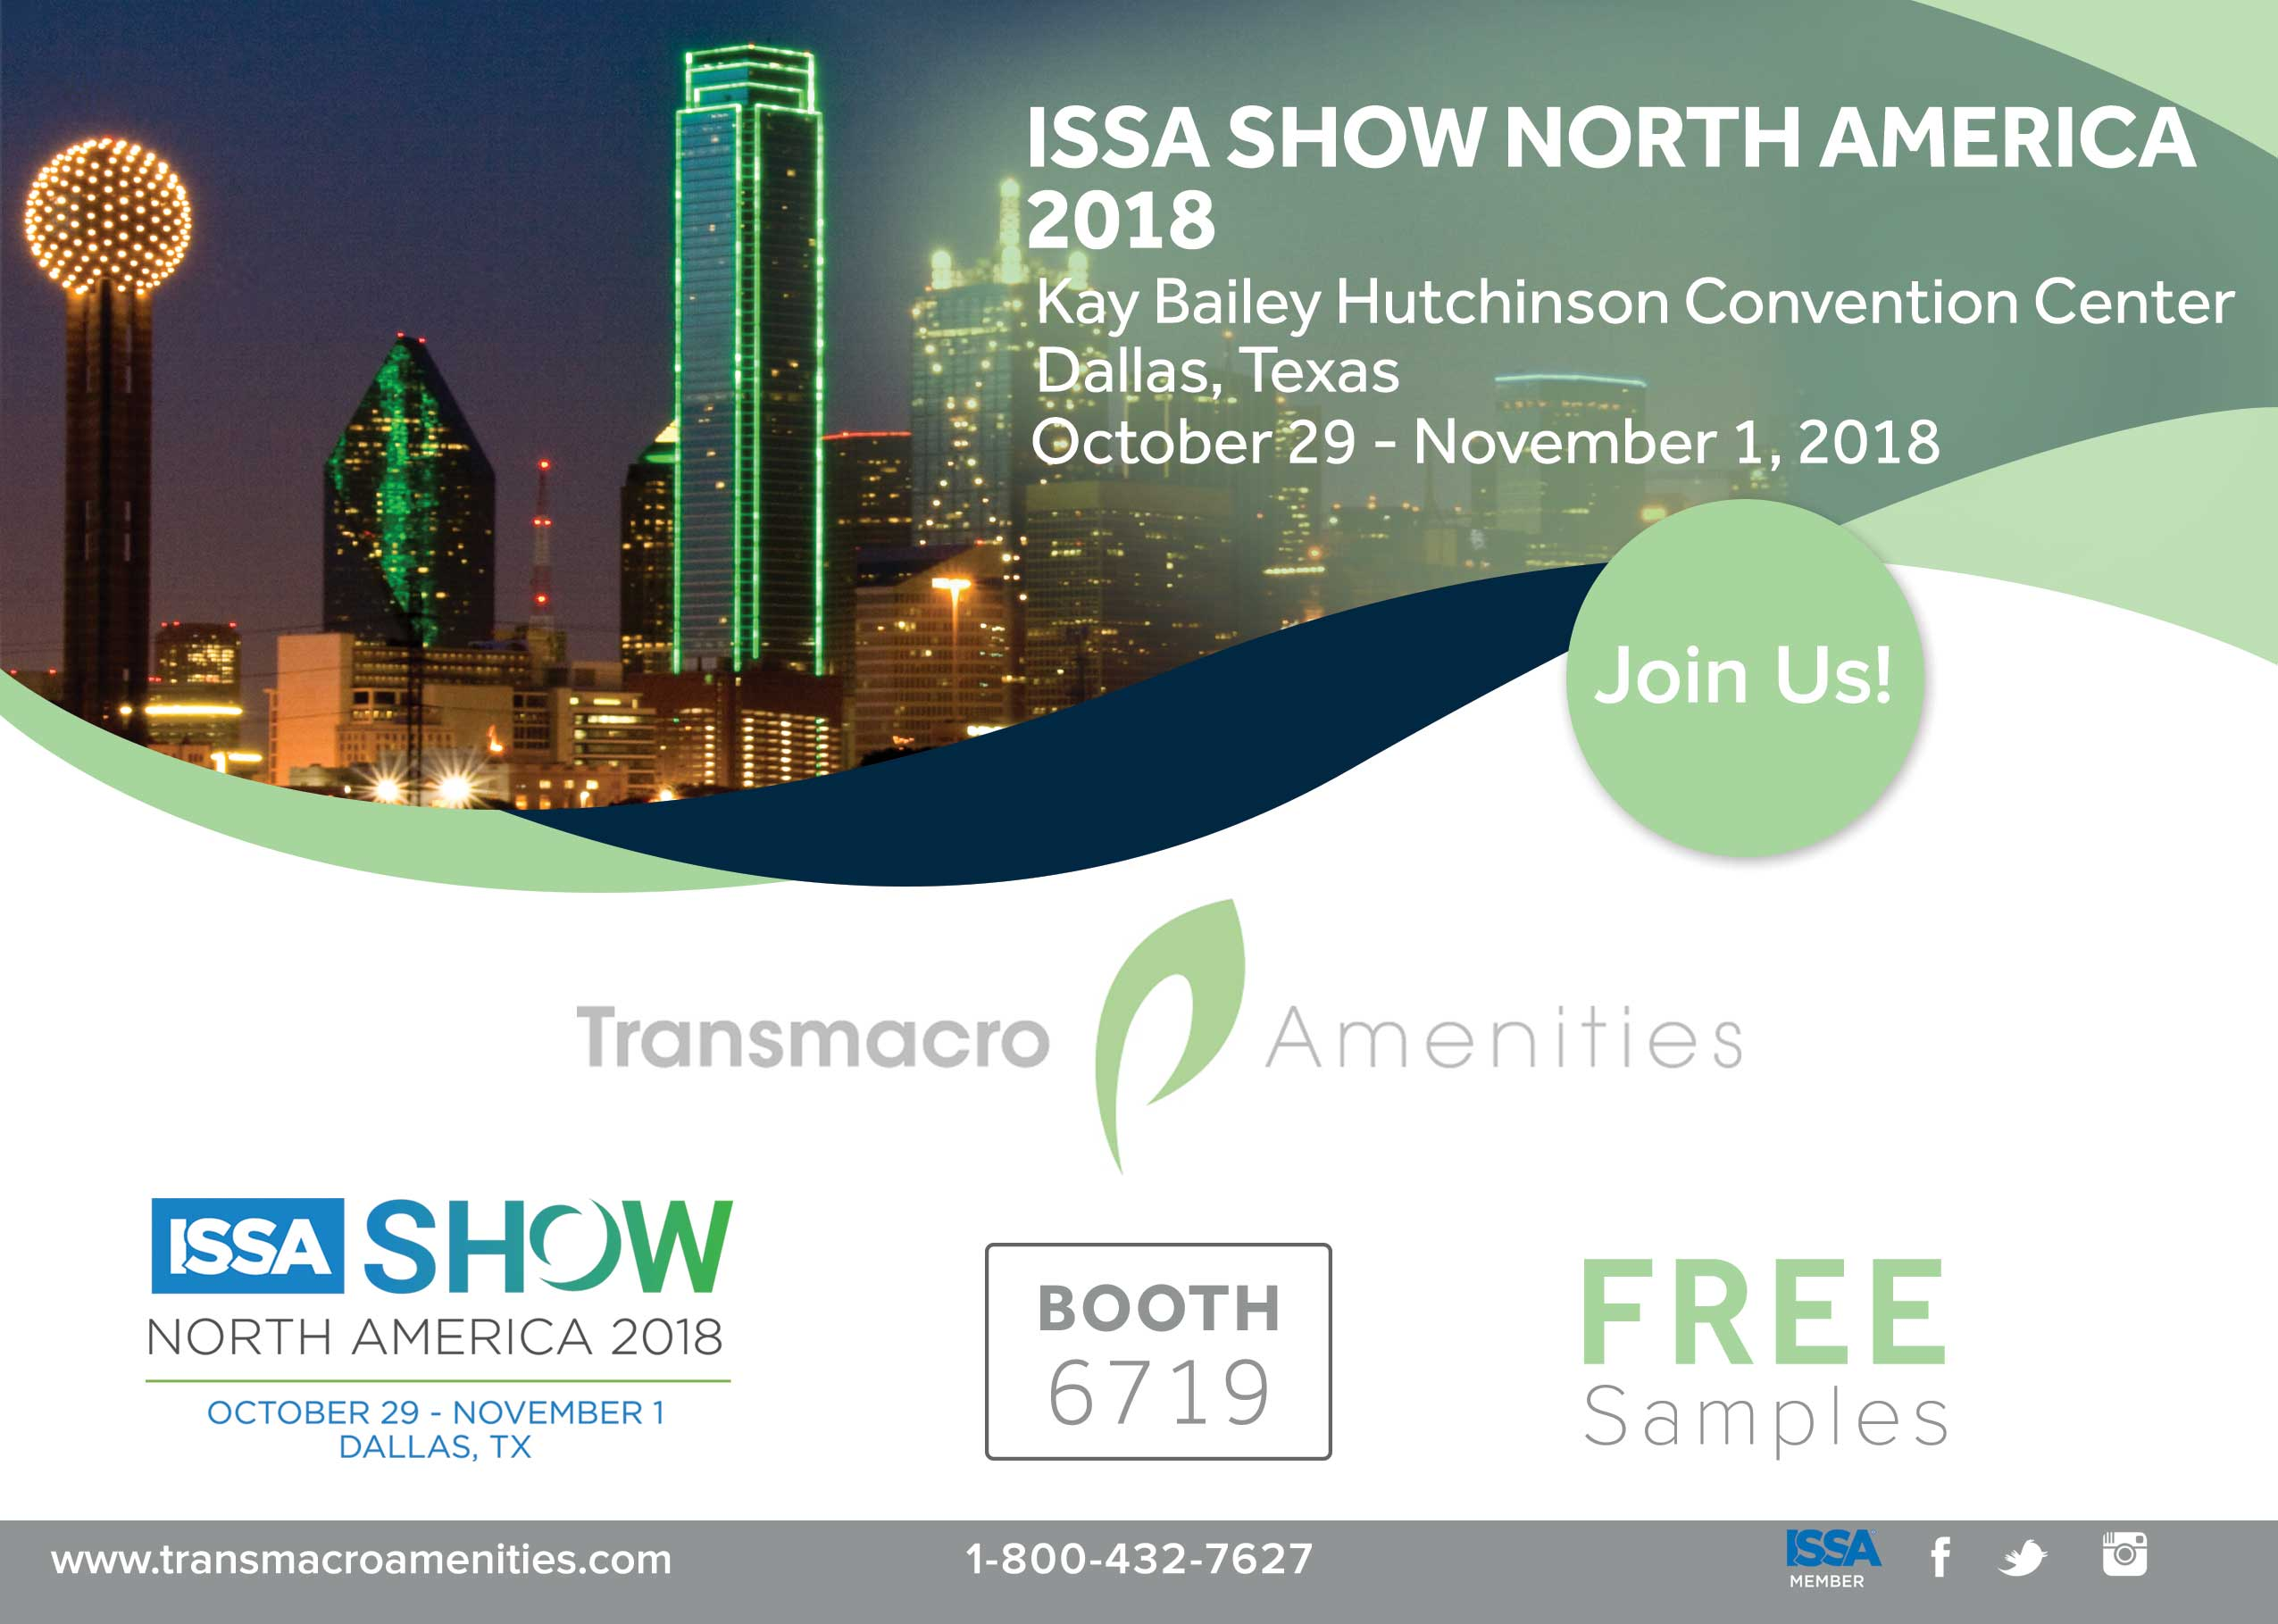 2018 ISSA Interclean Show Transmacro